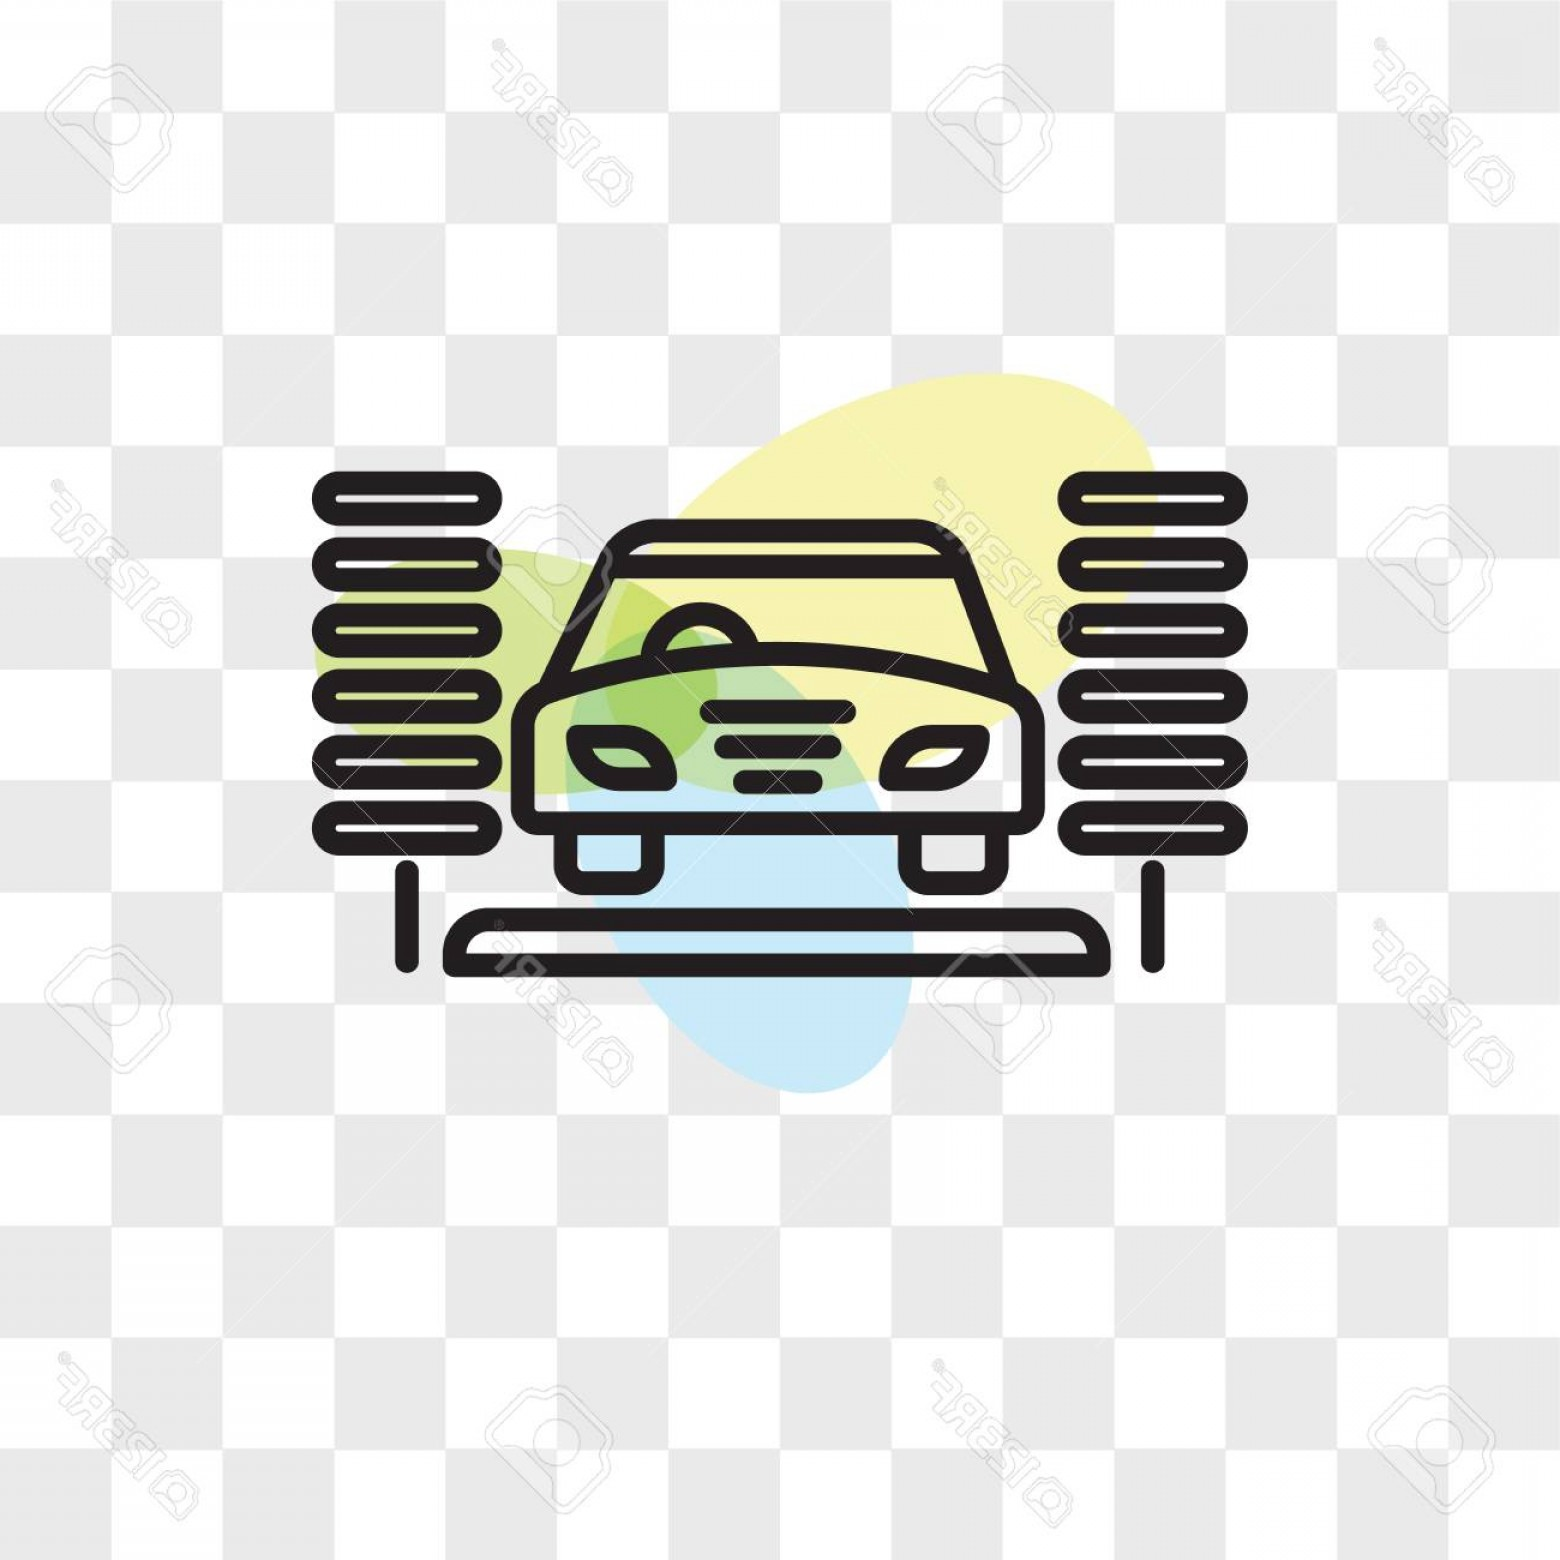 Car Wash Vector Graphics: Photostock Vector Car Wash Vector Icon Isolated On Transparent Background Car Wash Logo Concept